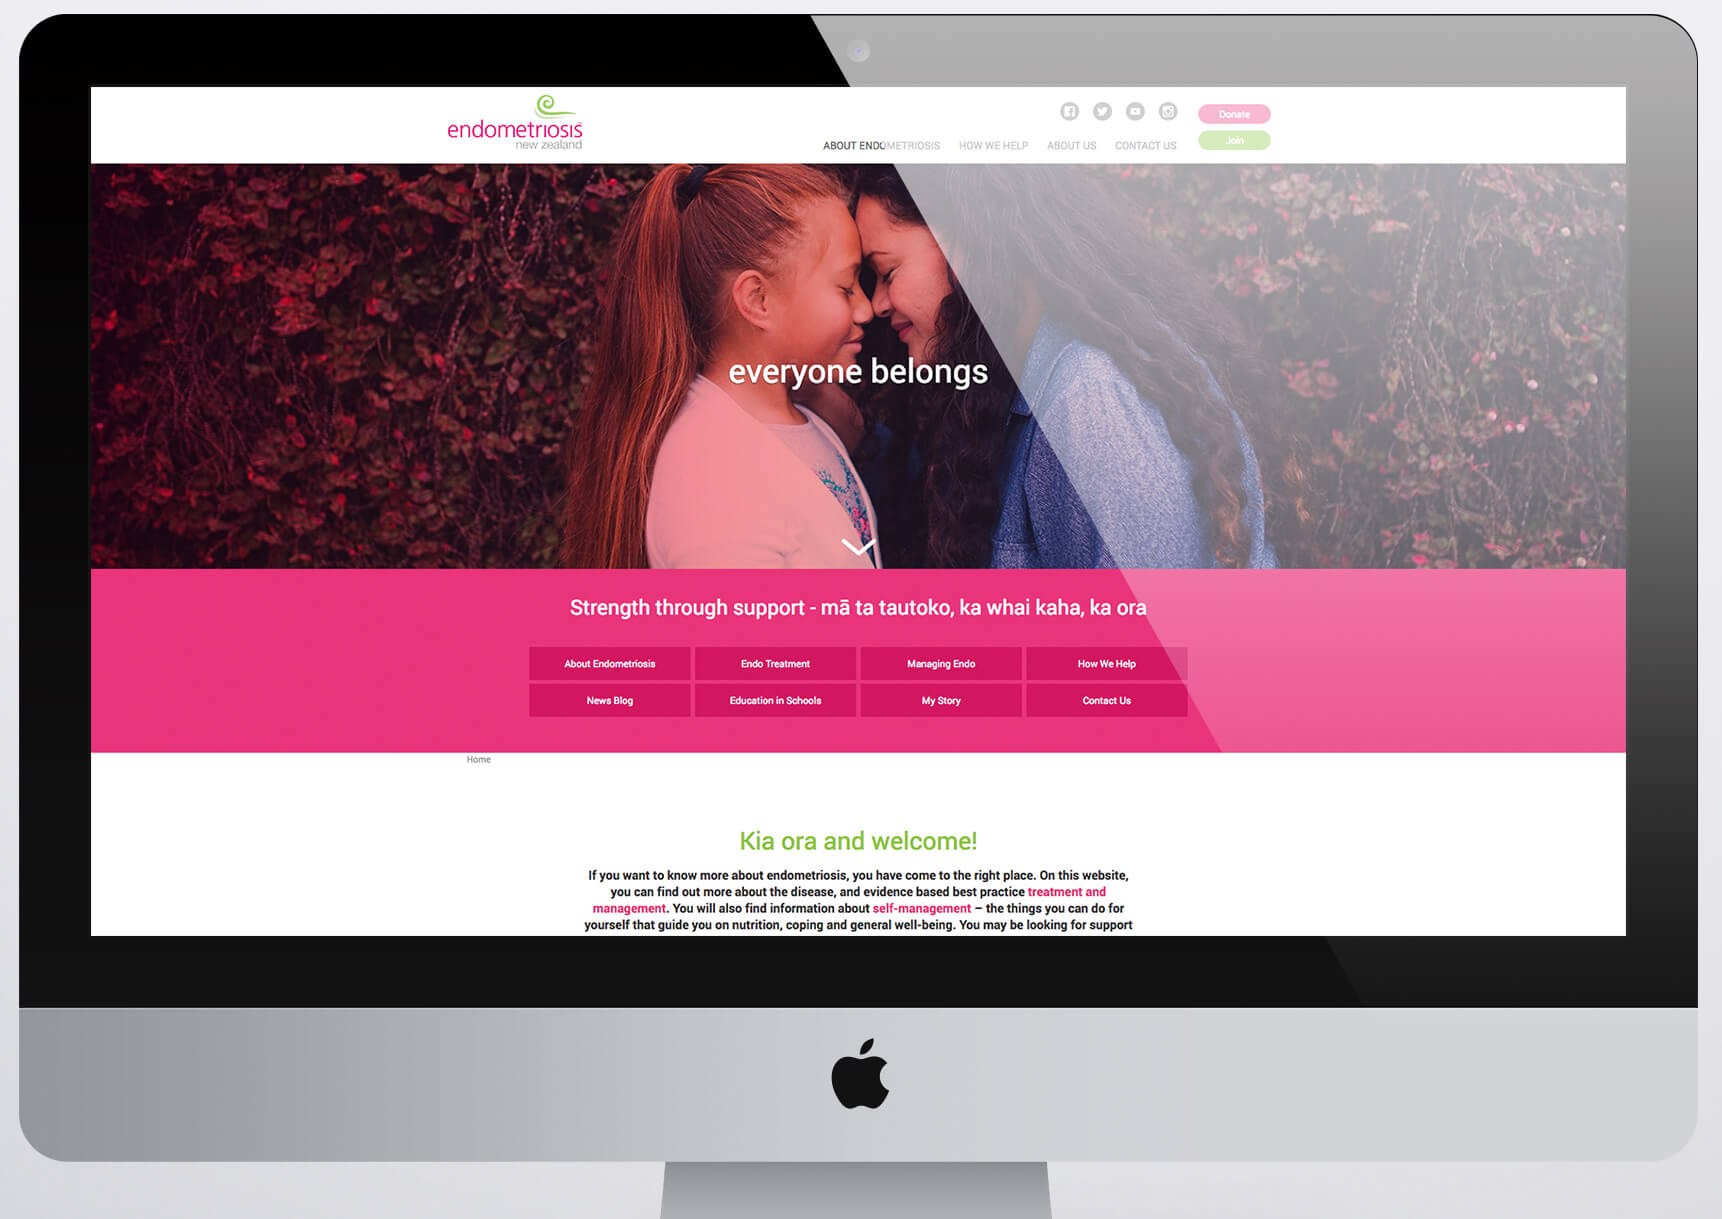 Endometriosis New Zealand - Website Designed and Developed by Pinnacle&Co. Ltd. Christchurch